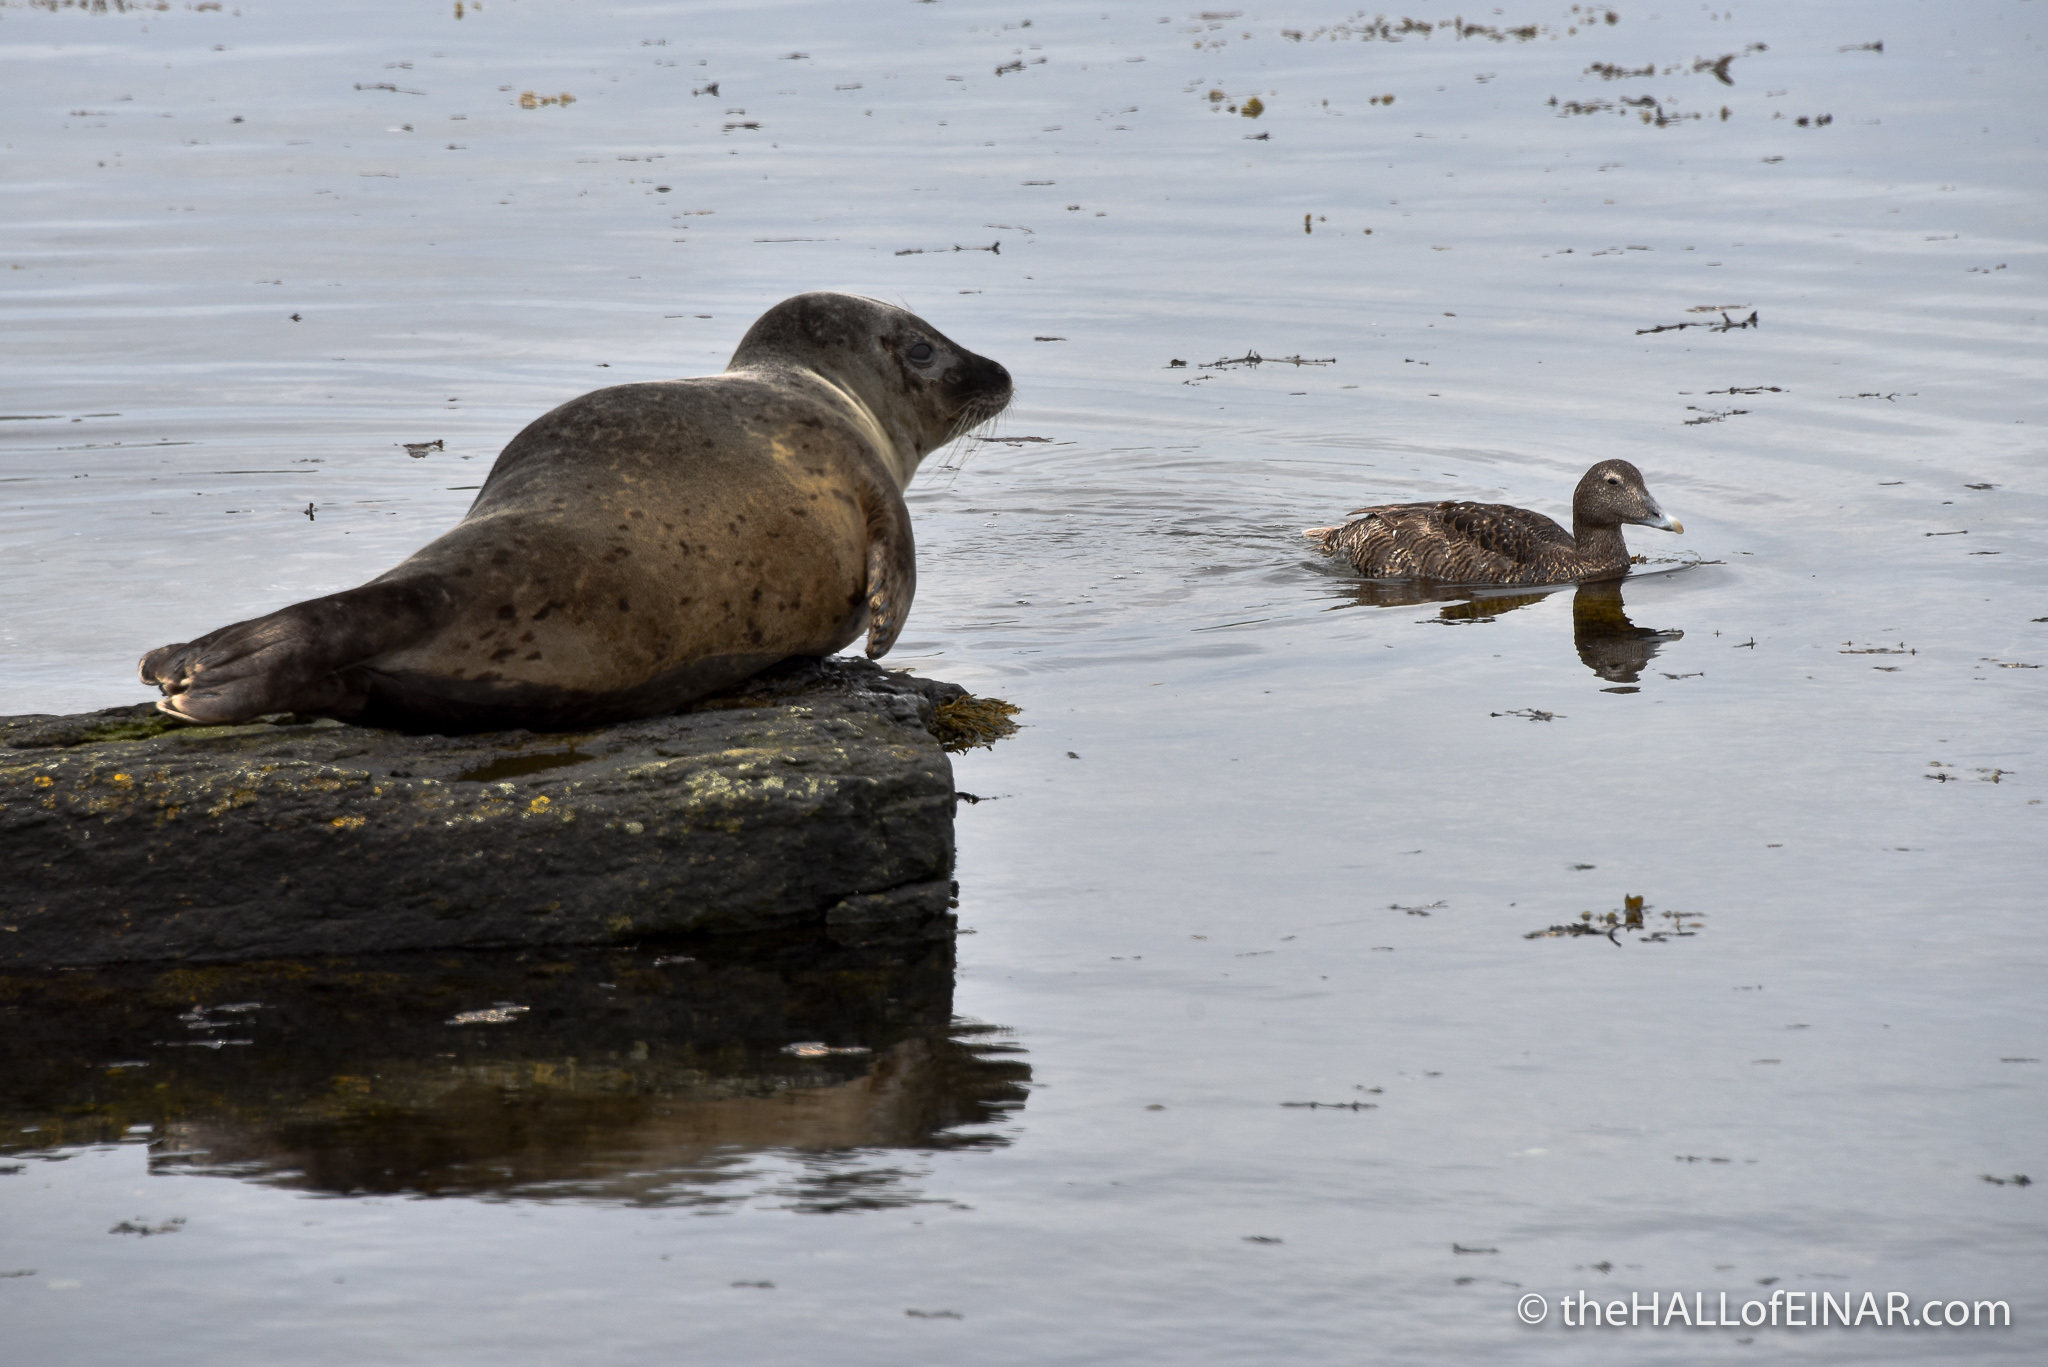 Seal and Eider Duck - The Hall of Einar - photograph (c) David Bailey (not the)